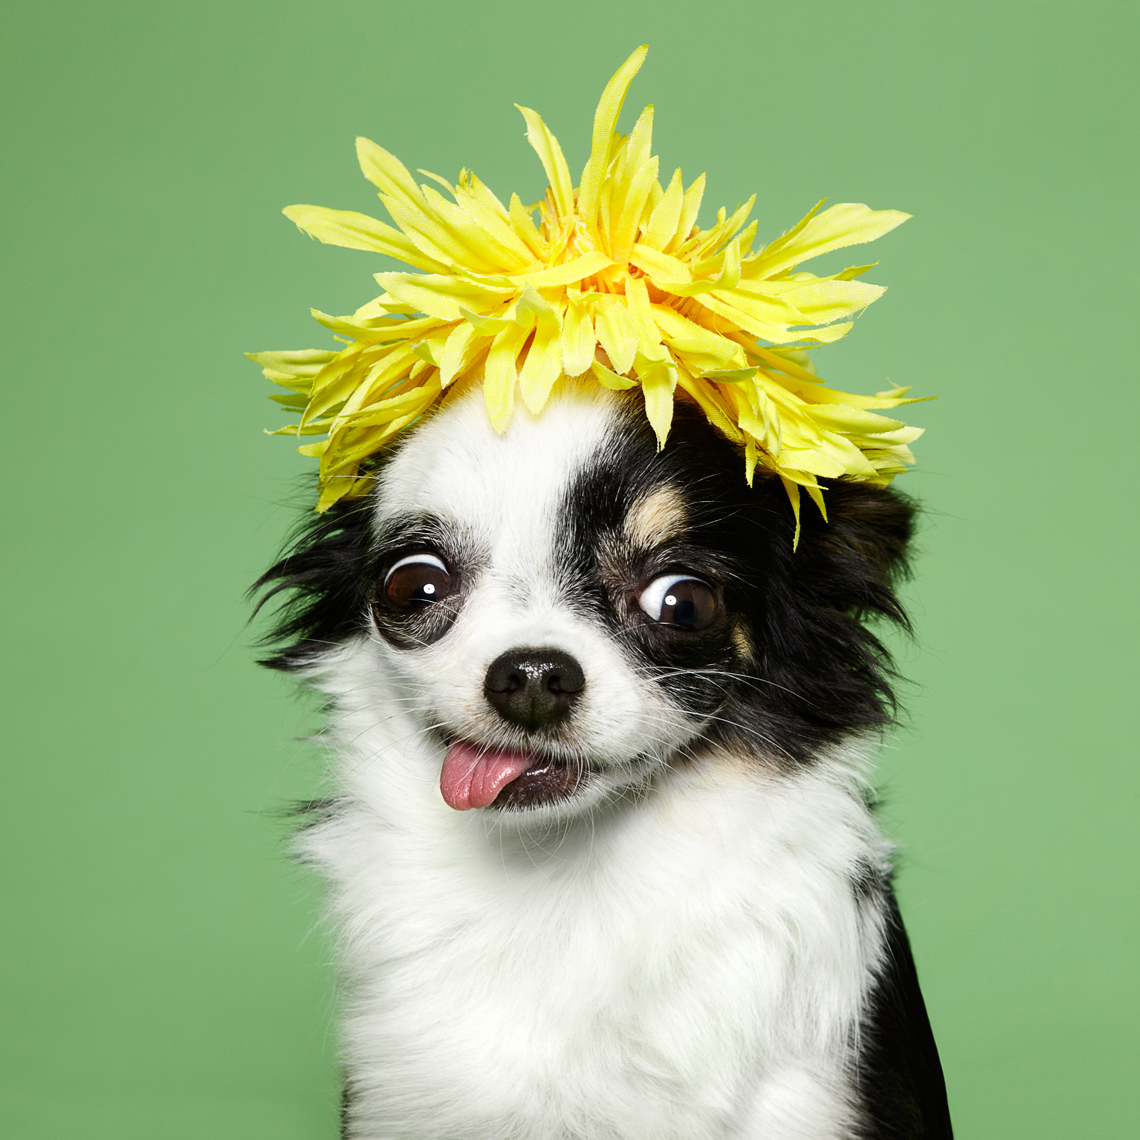 Chihuahua with a flower hat